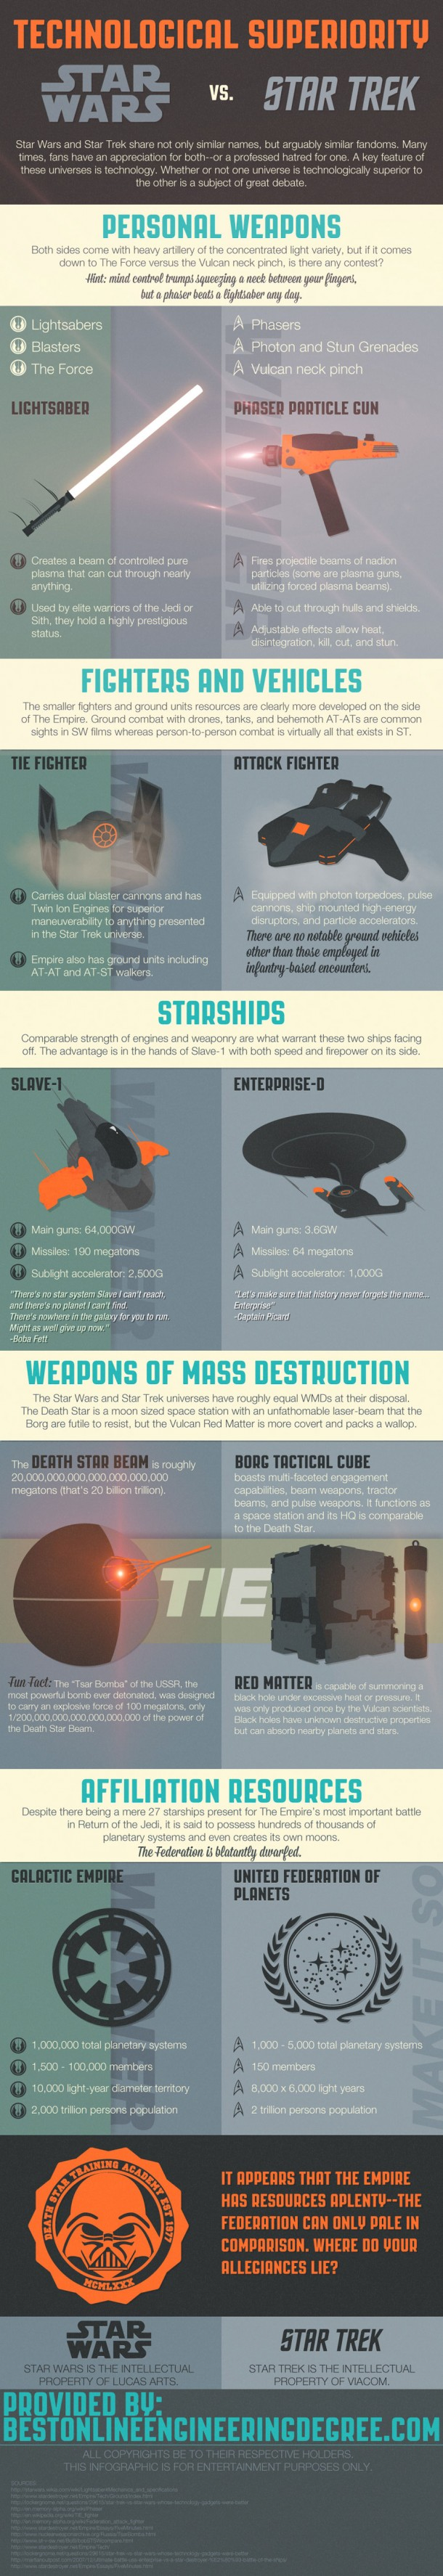 Star Wars vs Star Trek - Infographie